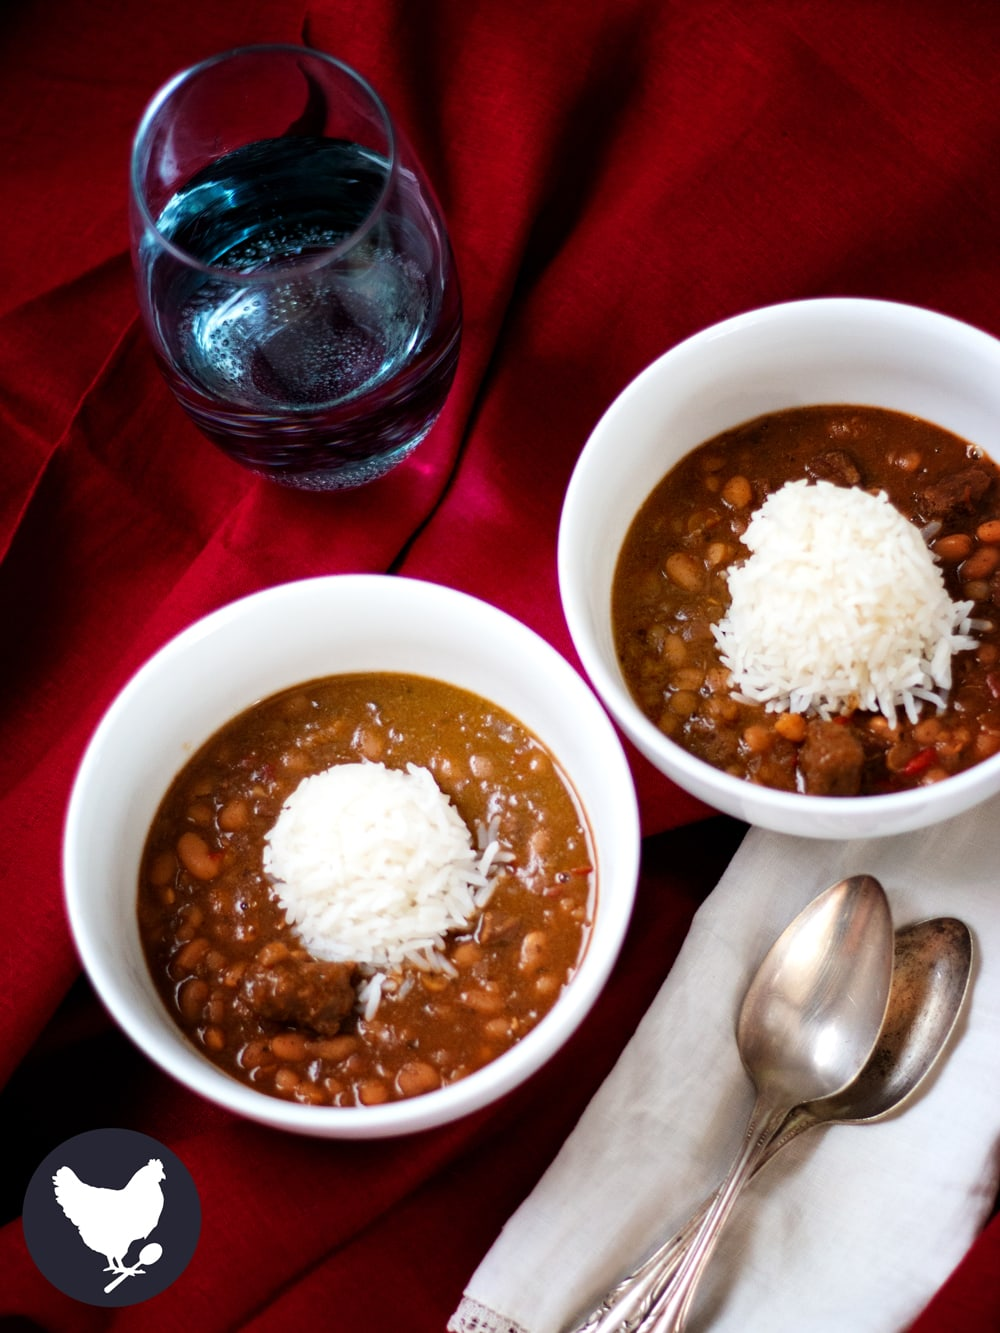 Caribou Andouille chili from Cosmopolitan Cornbread - this hunter chili can be made with caribou, moose, venison or even beef.